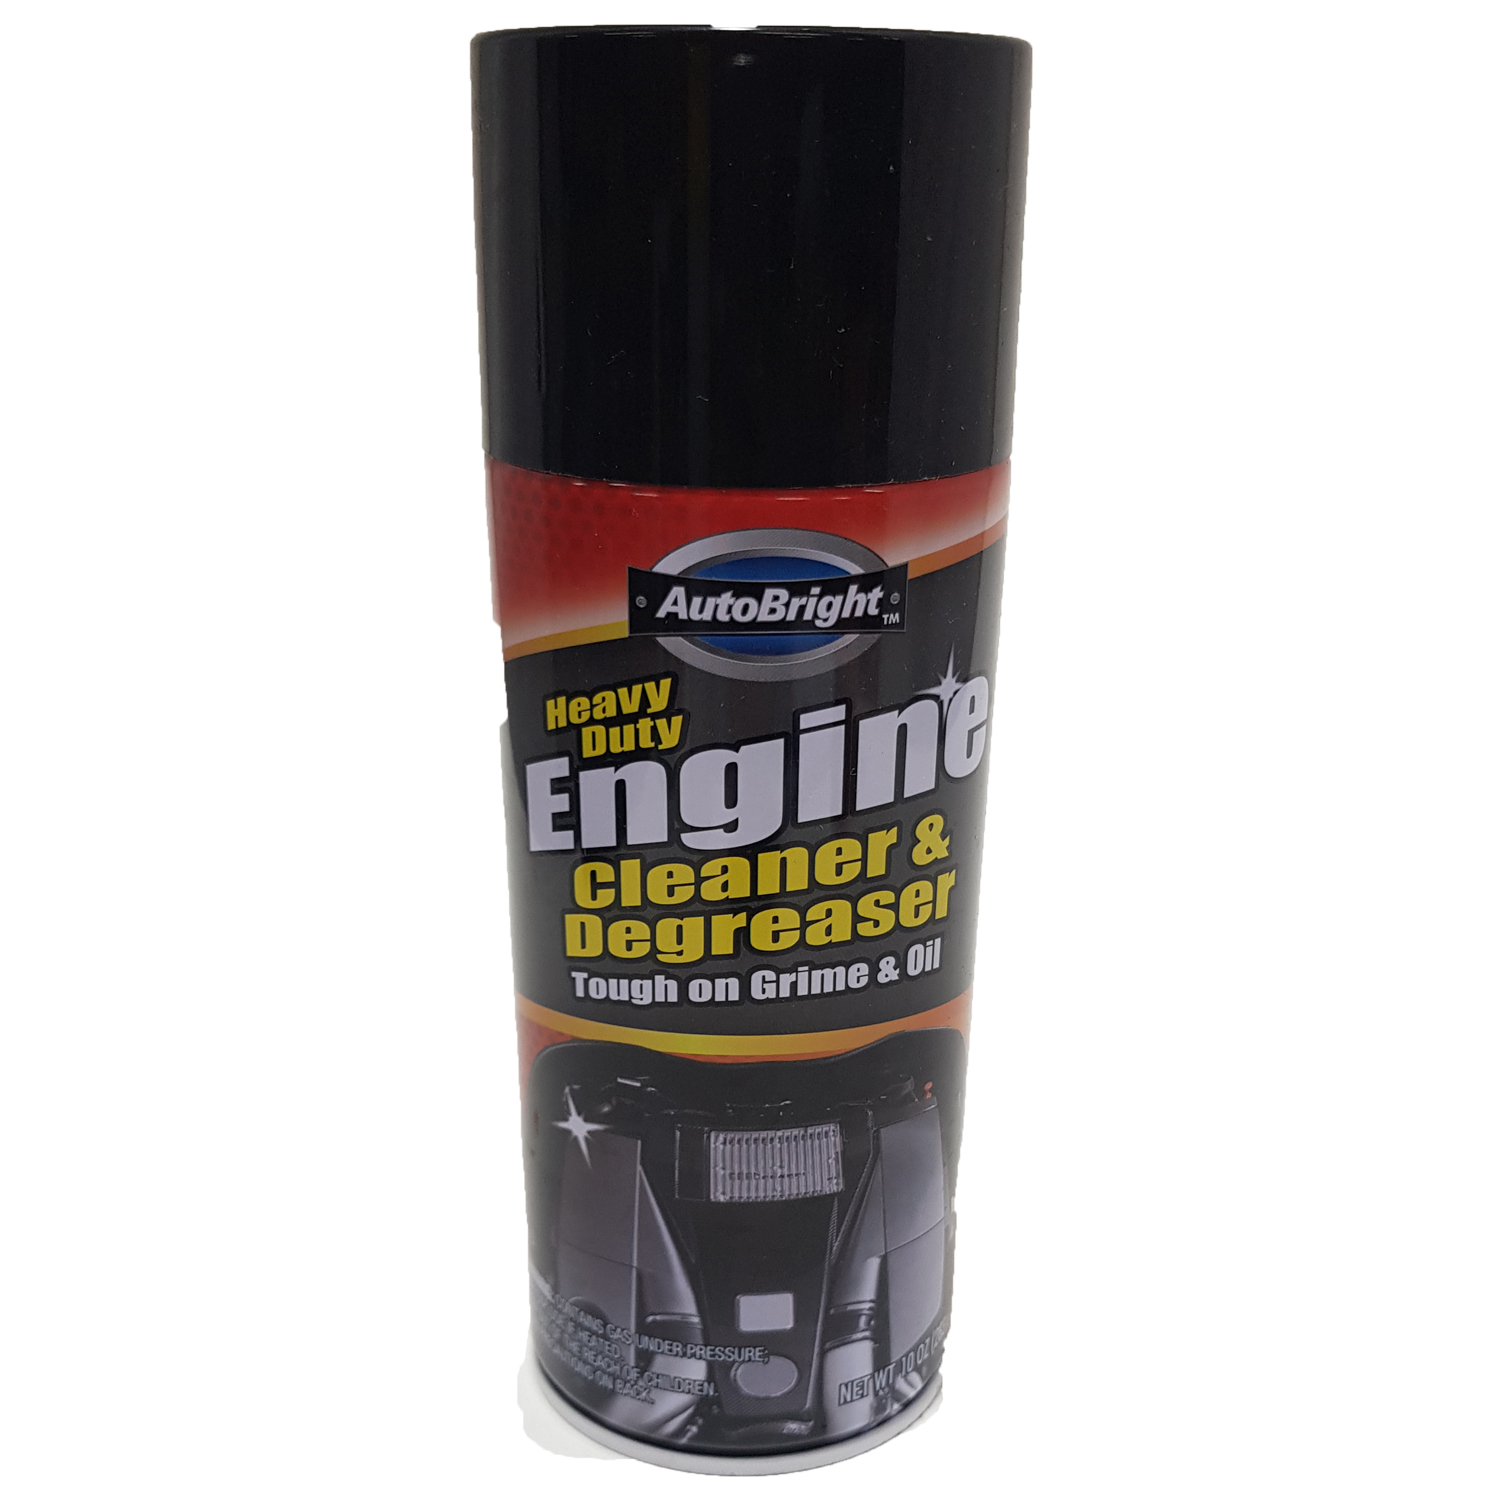 AUTOBRIGHT 10oz Foaming Engine Degreaser 283g